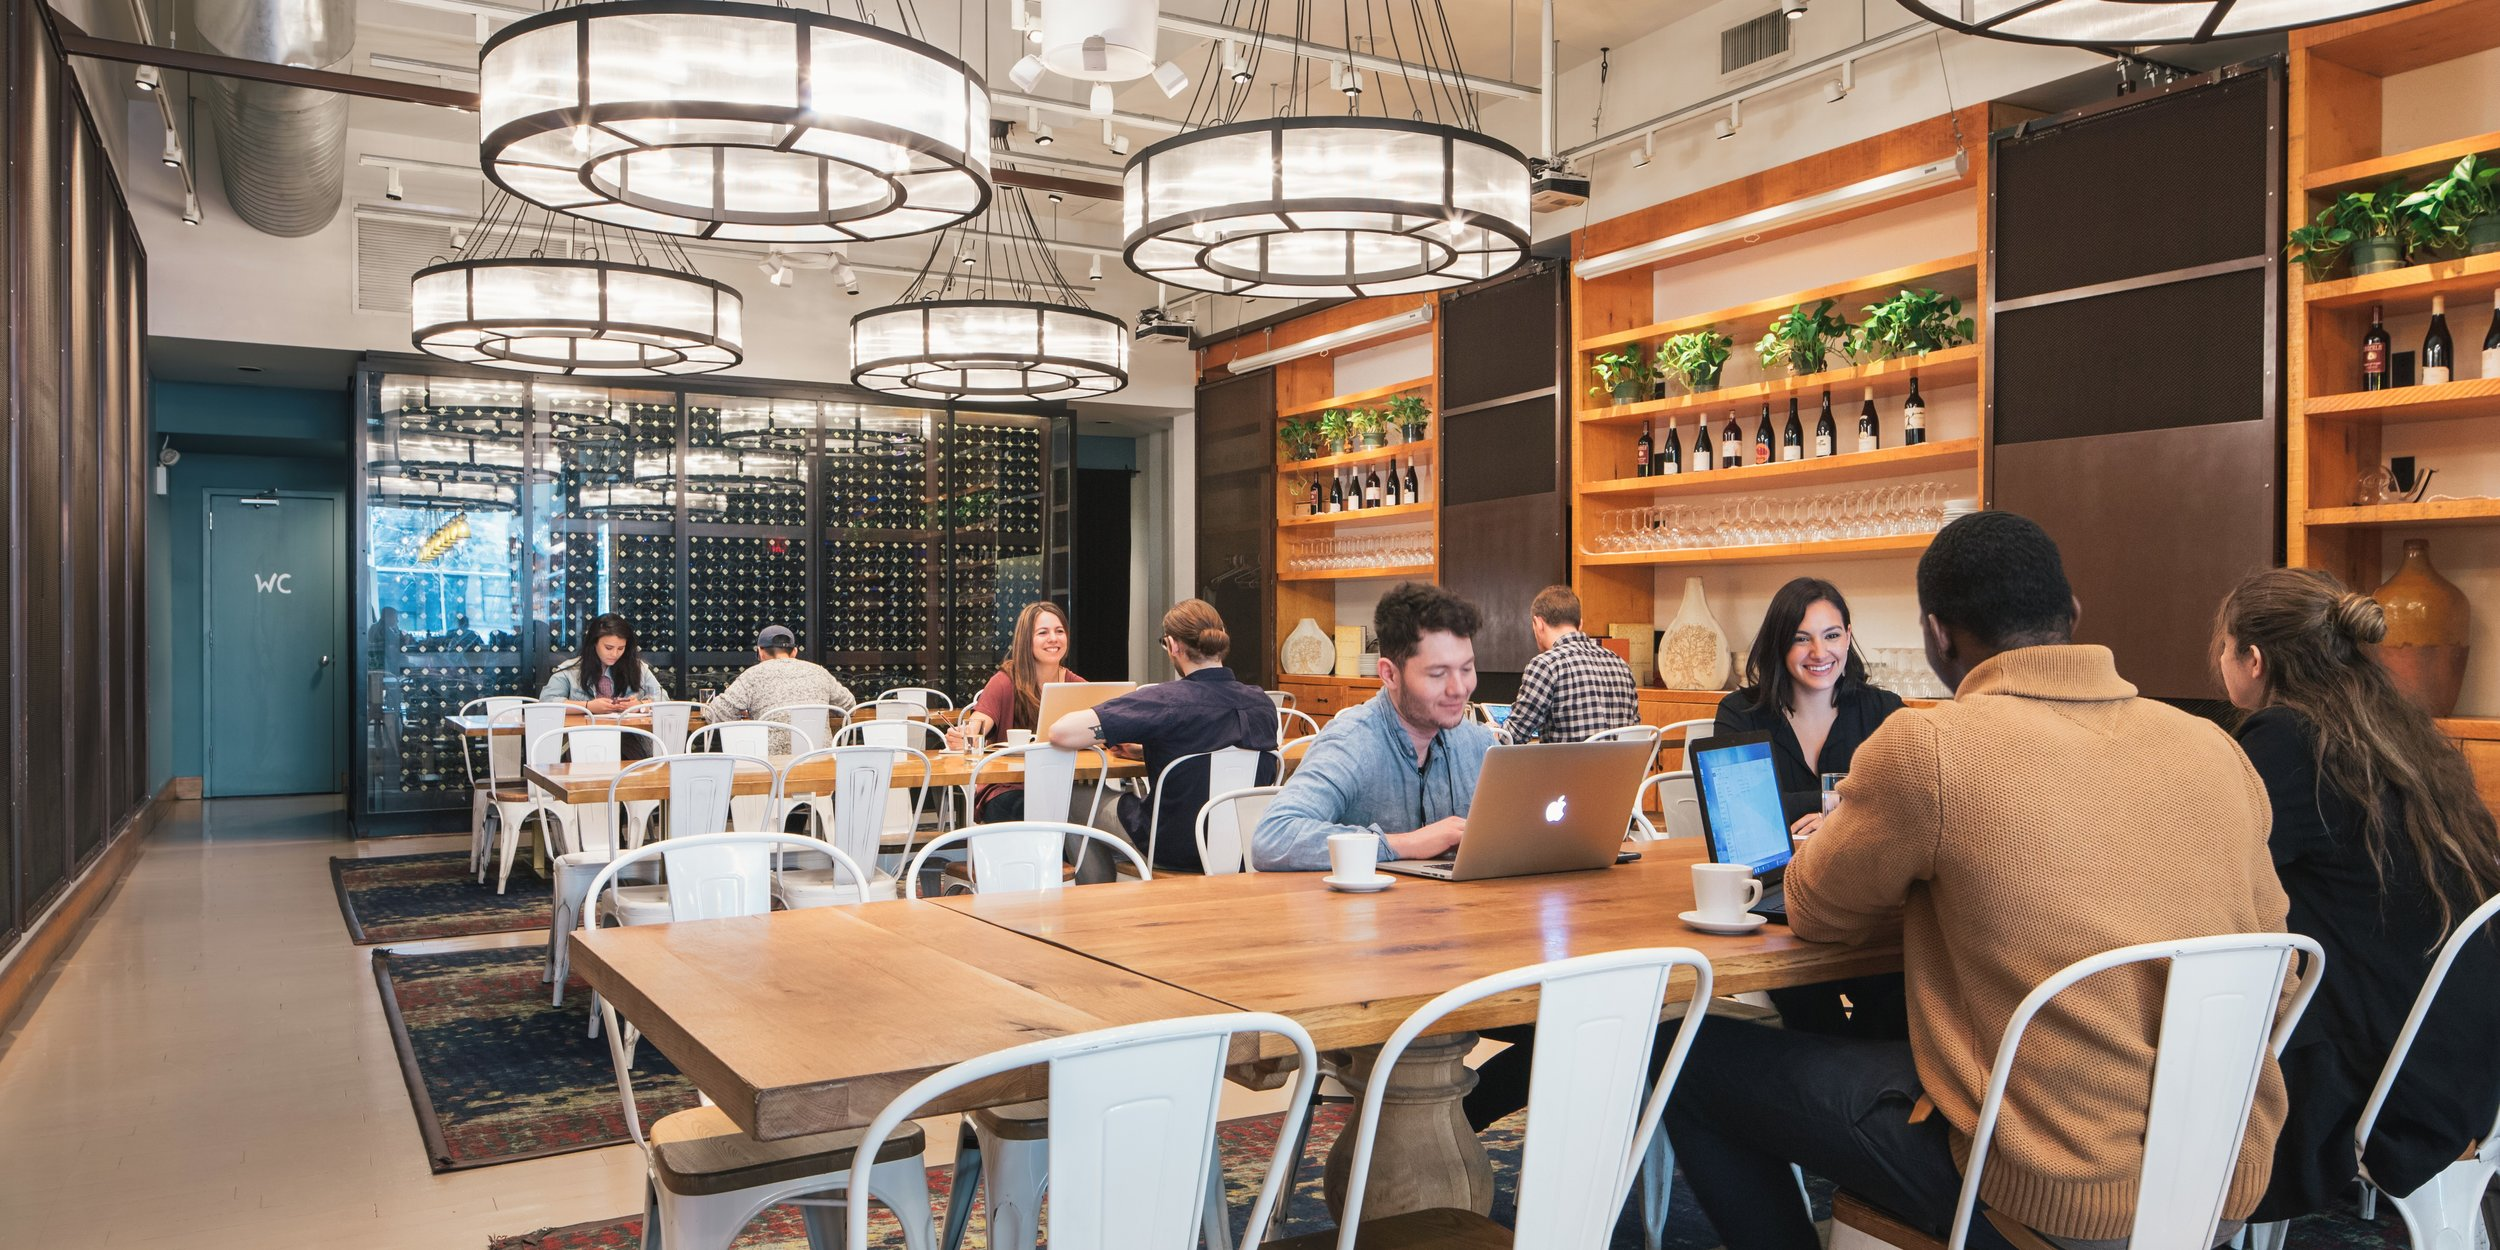 Corkbuzz as a Spacious coworking location during the day. Image Source: Spacious